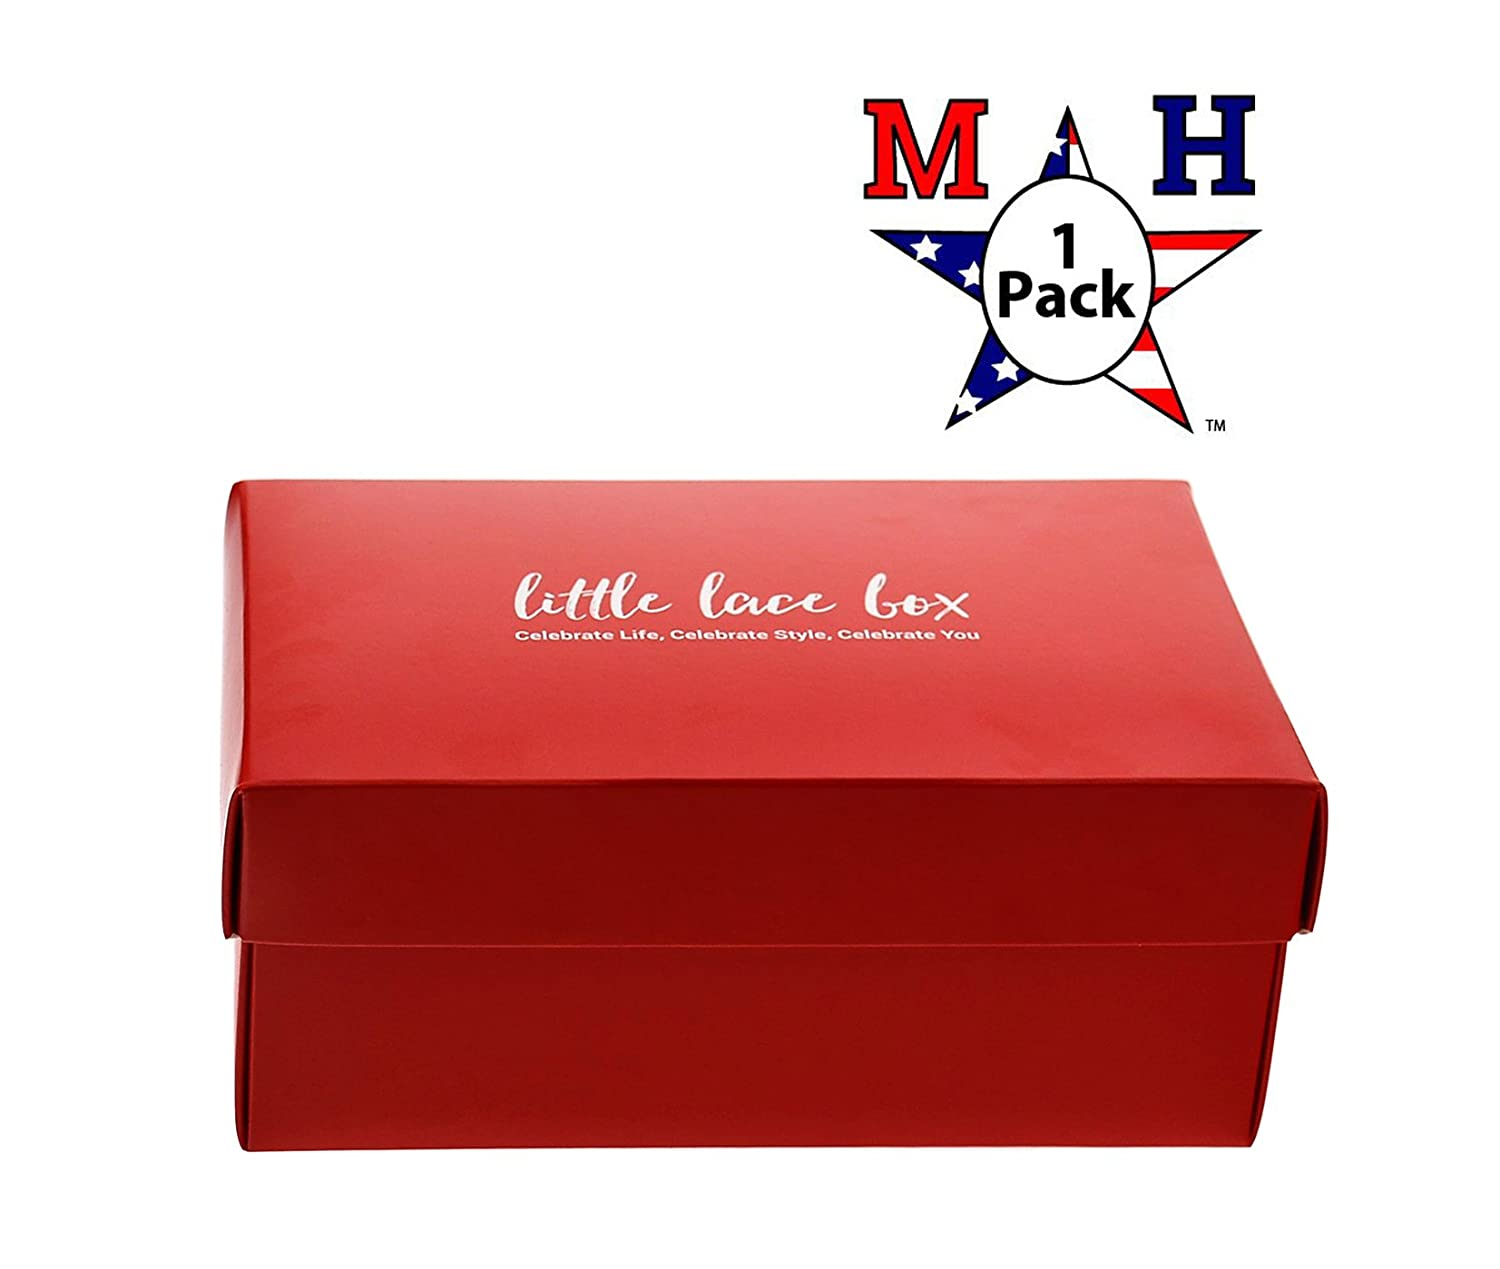 (24 Pack) 8-3/4'' W x 5-3/4'' D x 3- 11/16'' H Shoe Box Style Cardboard Container (1) Marketing Holders